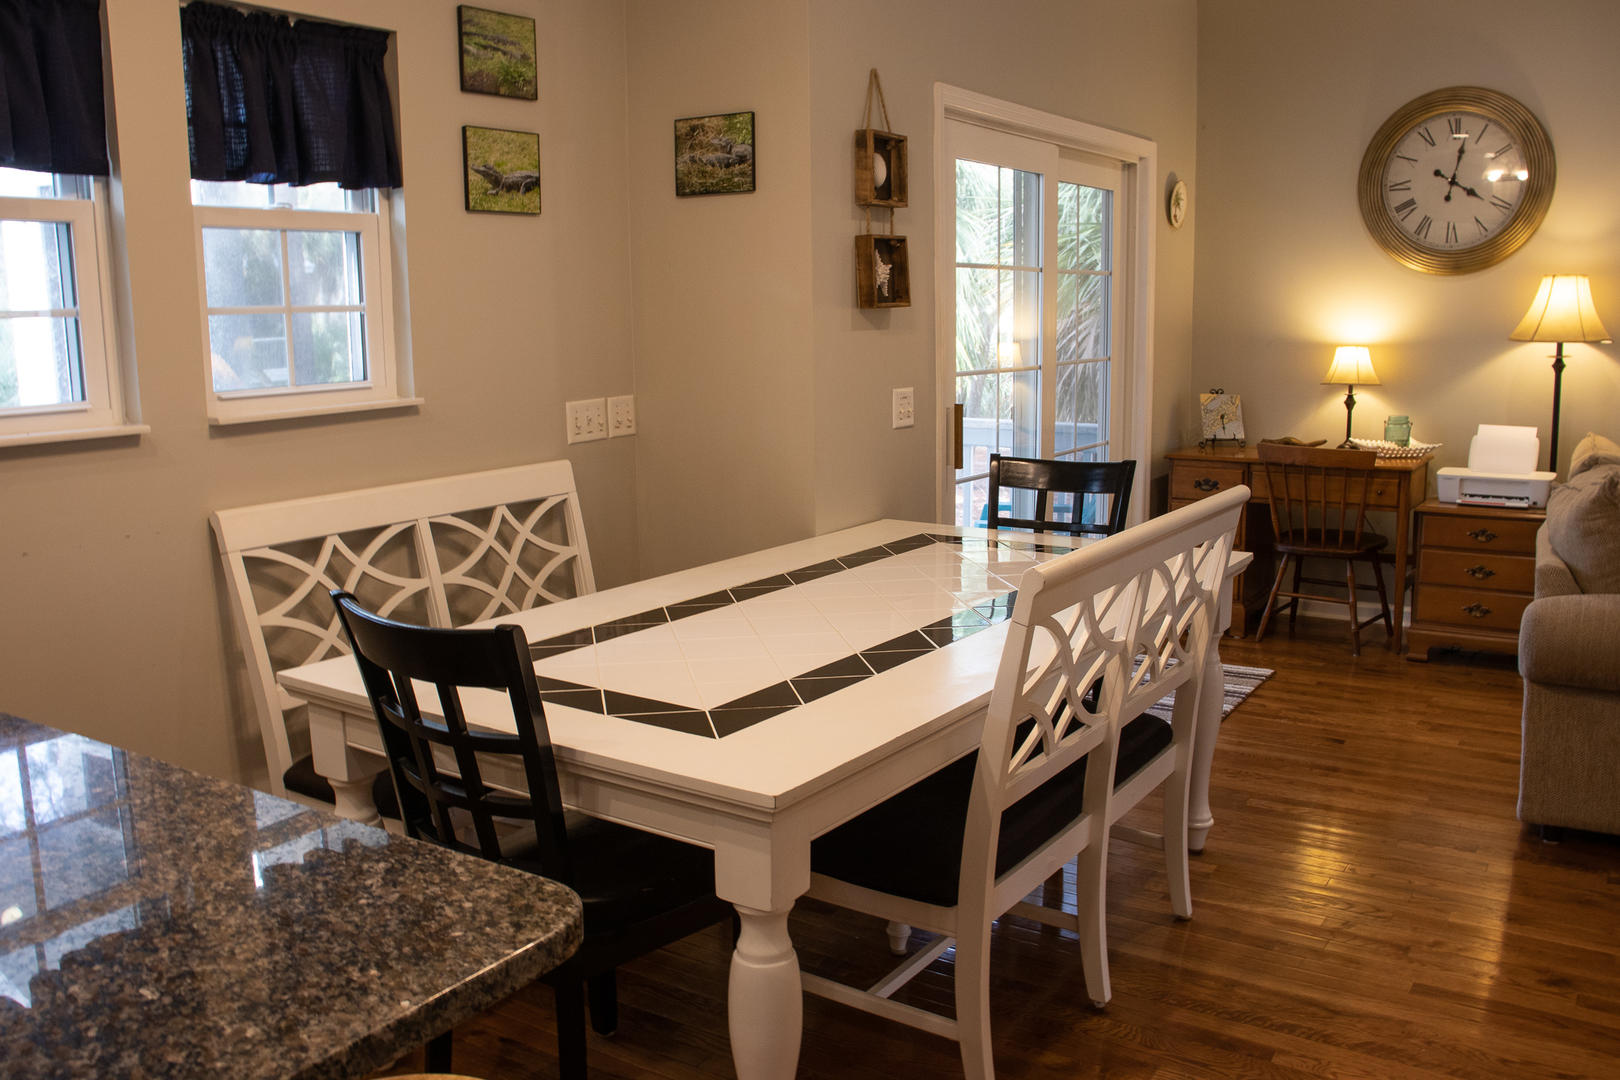 Dining, 6 seats at table, next to kitchen